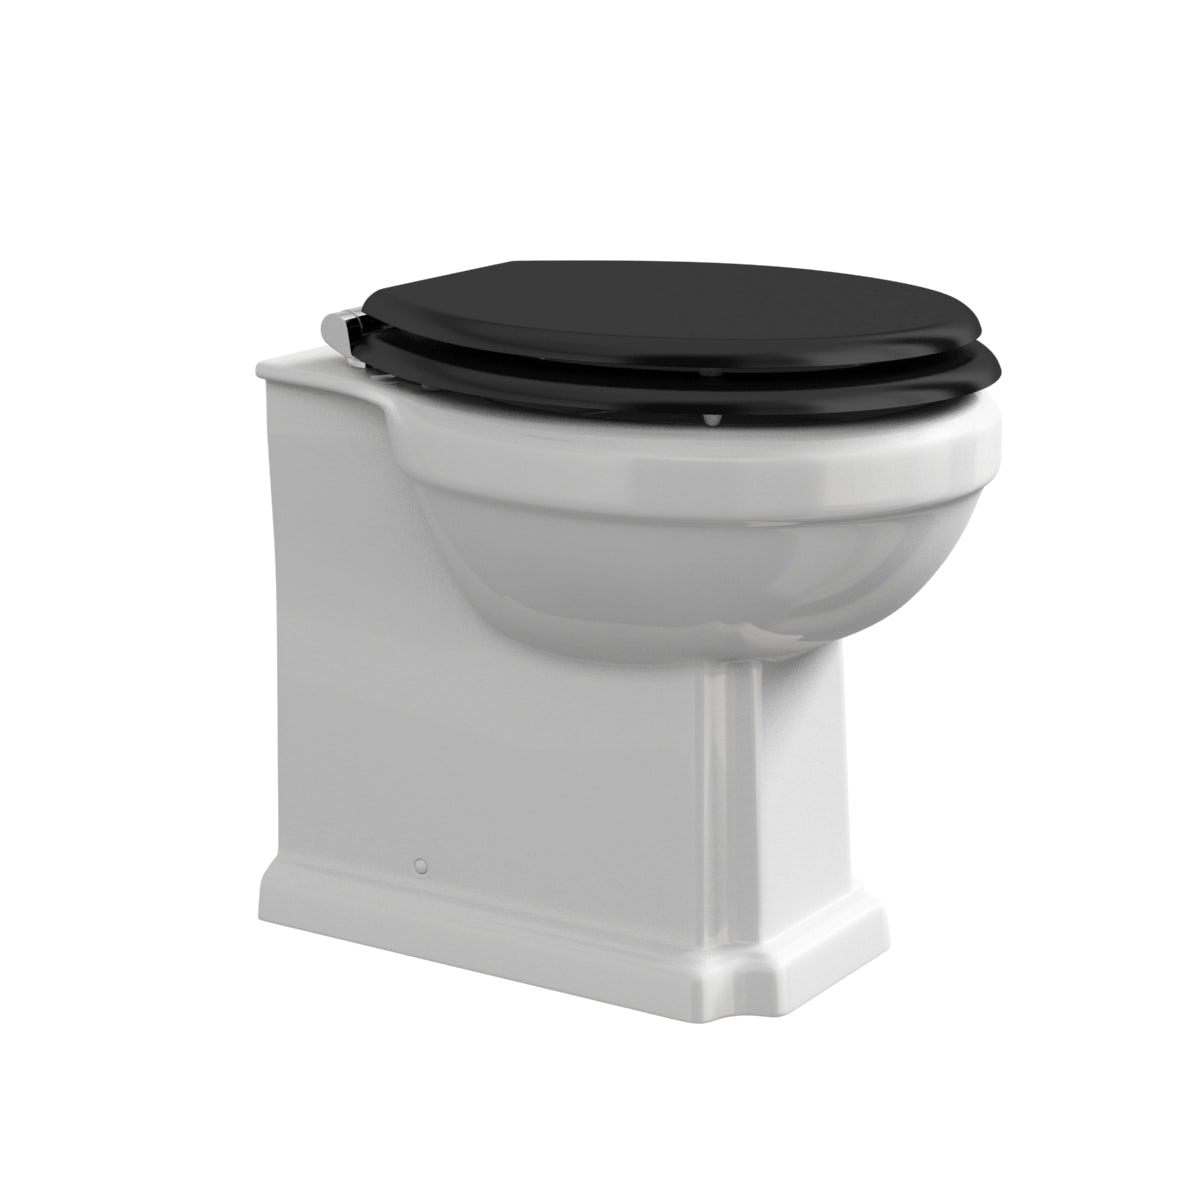 black wooden soft close toilet seat.  toilet with black wooden soft close seat Click to zoom 360 Image The Bath Co Camberley back wall